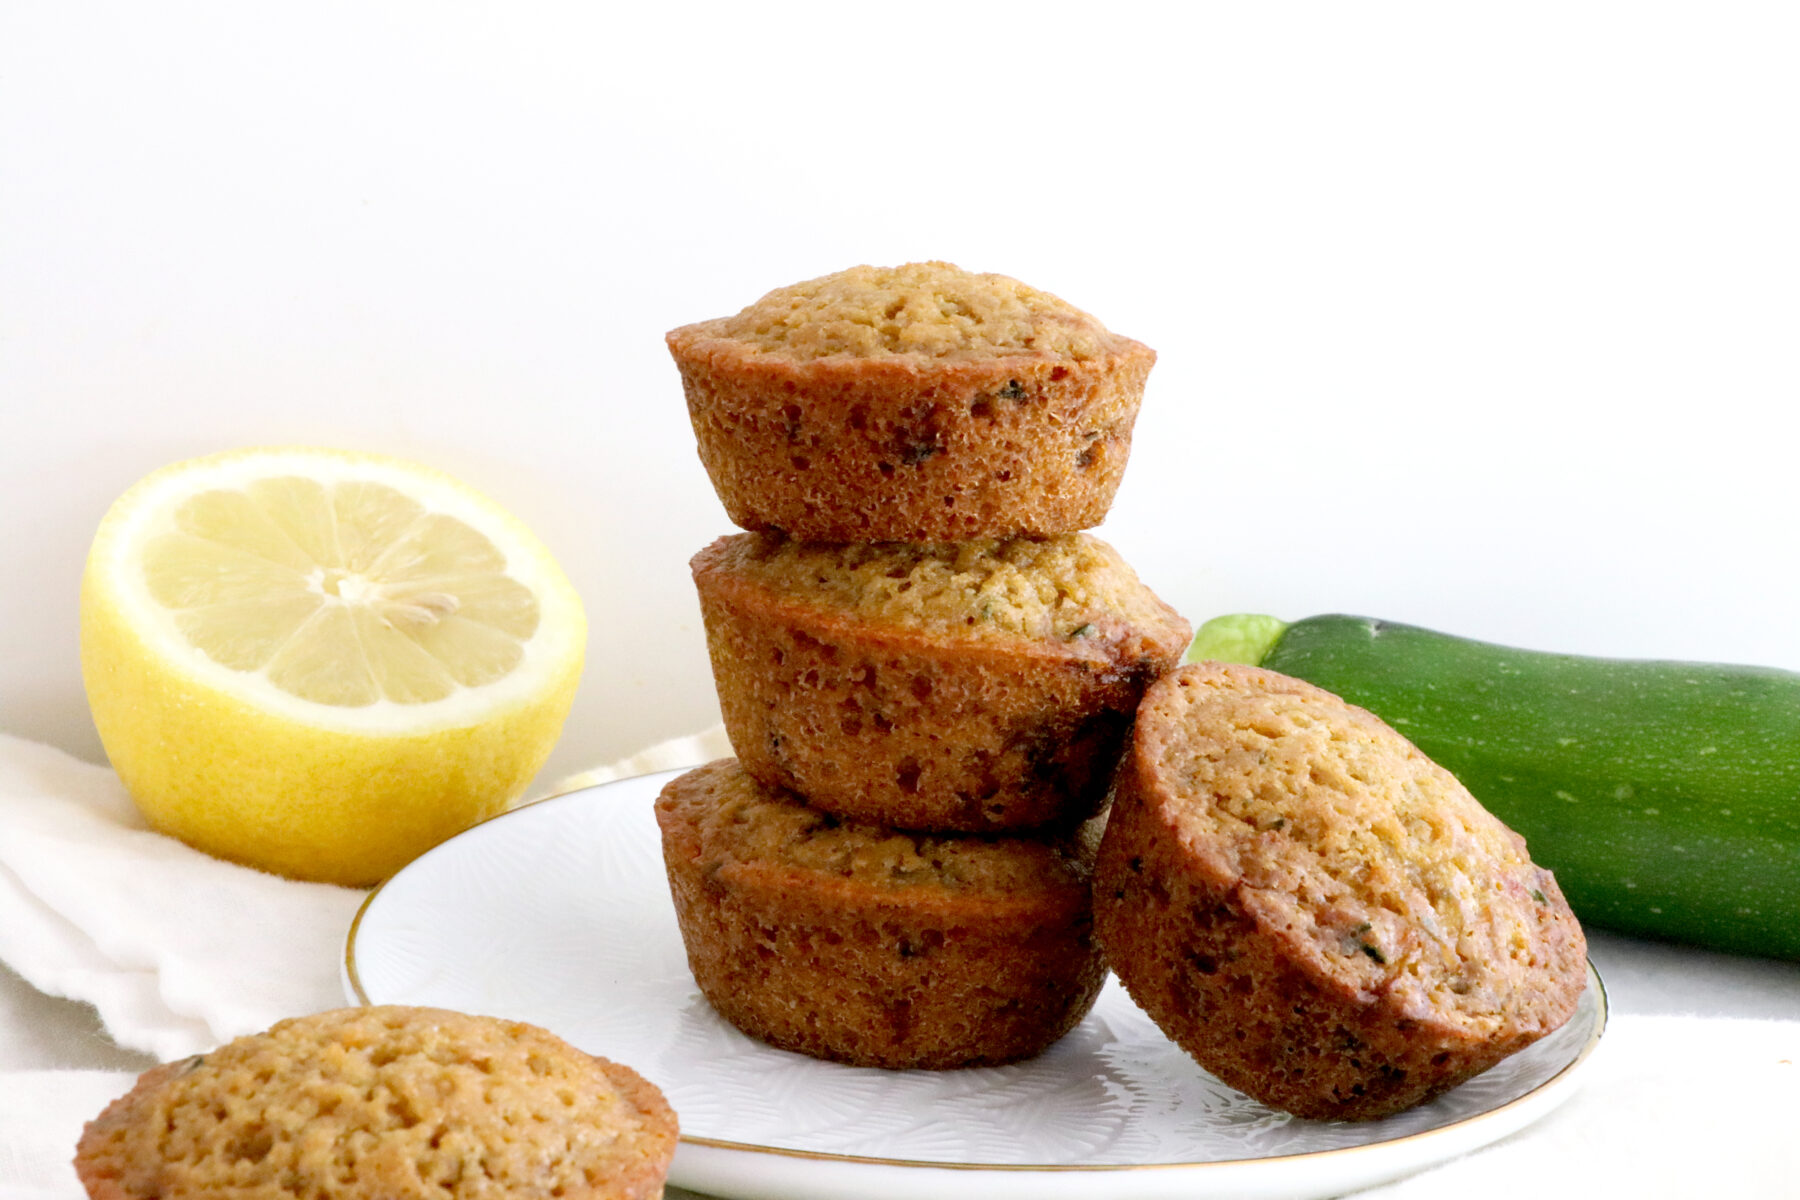 Three zucchini muffins stacked on top of each other with one leaning on the side all on a white plate. Zucchini and lemon in background.